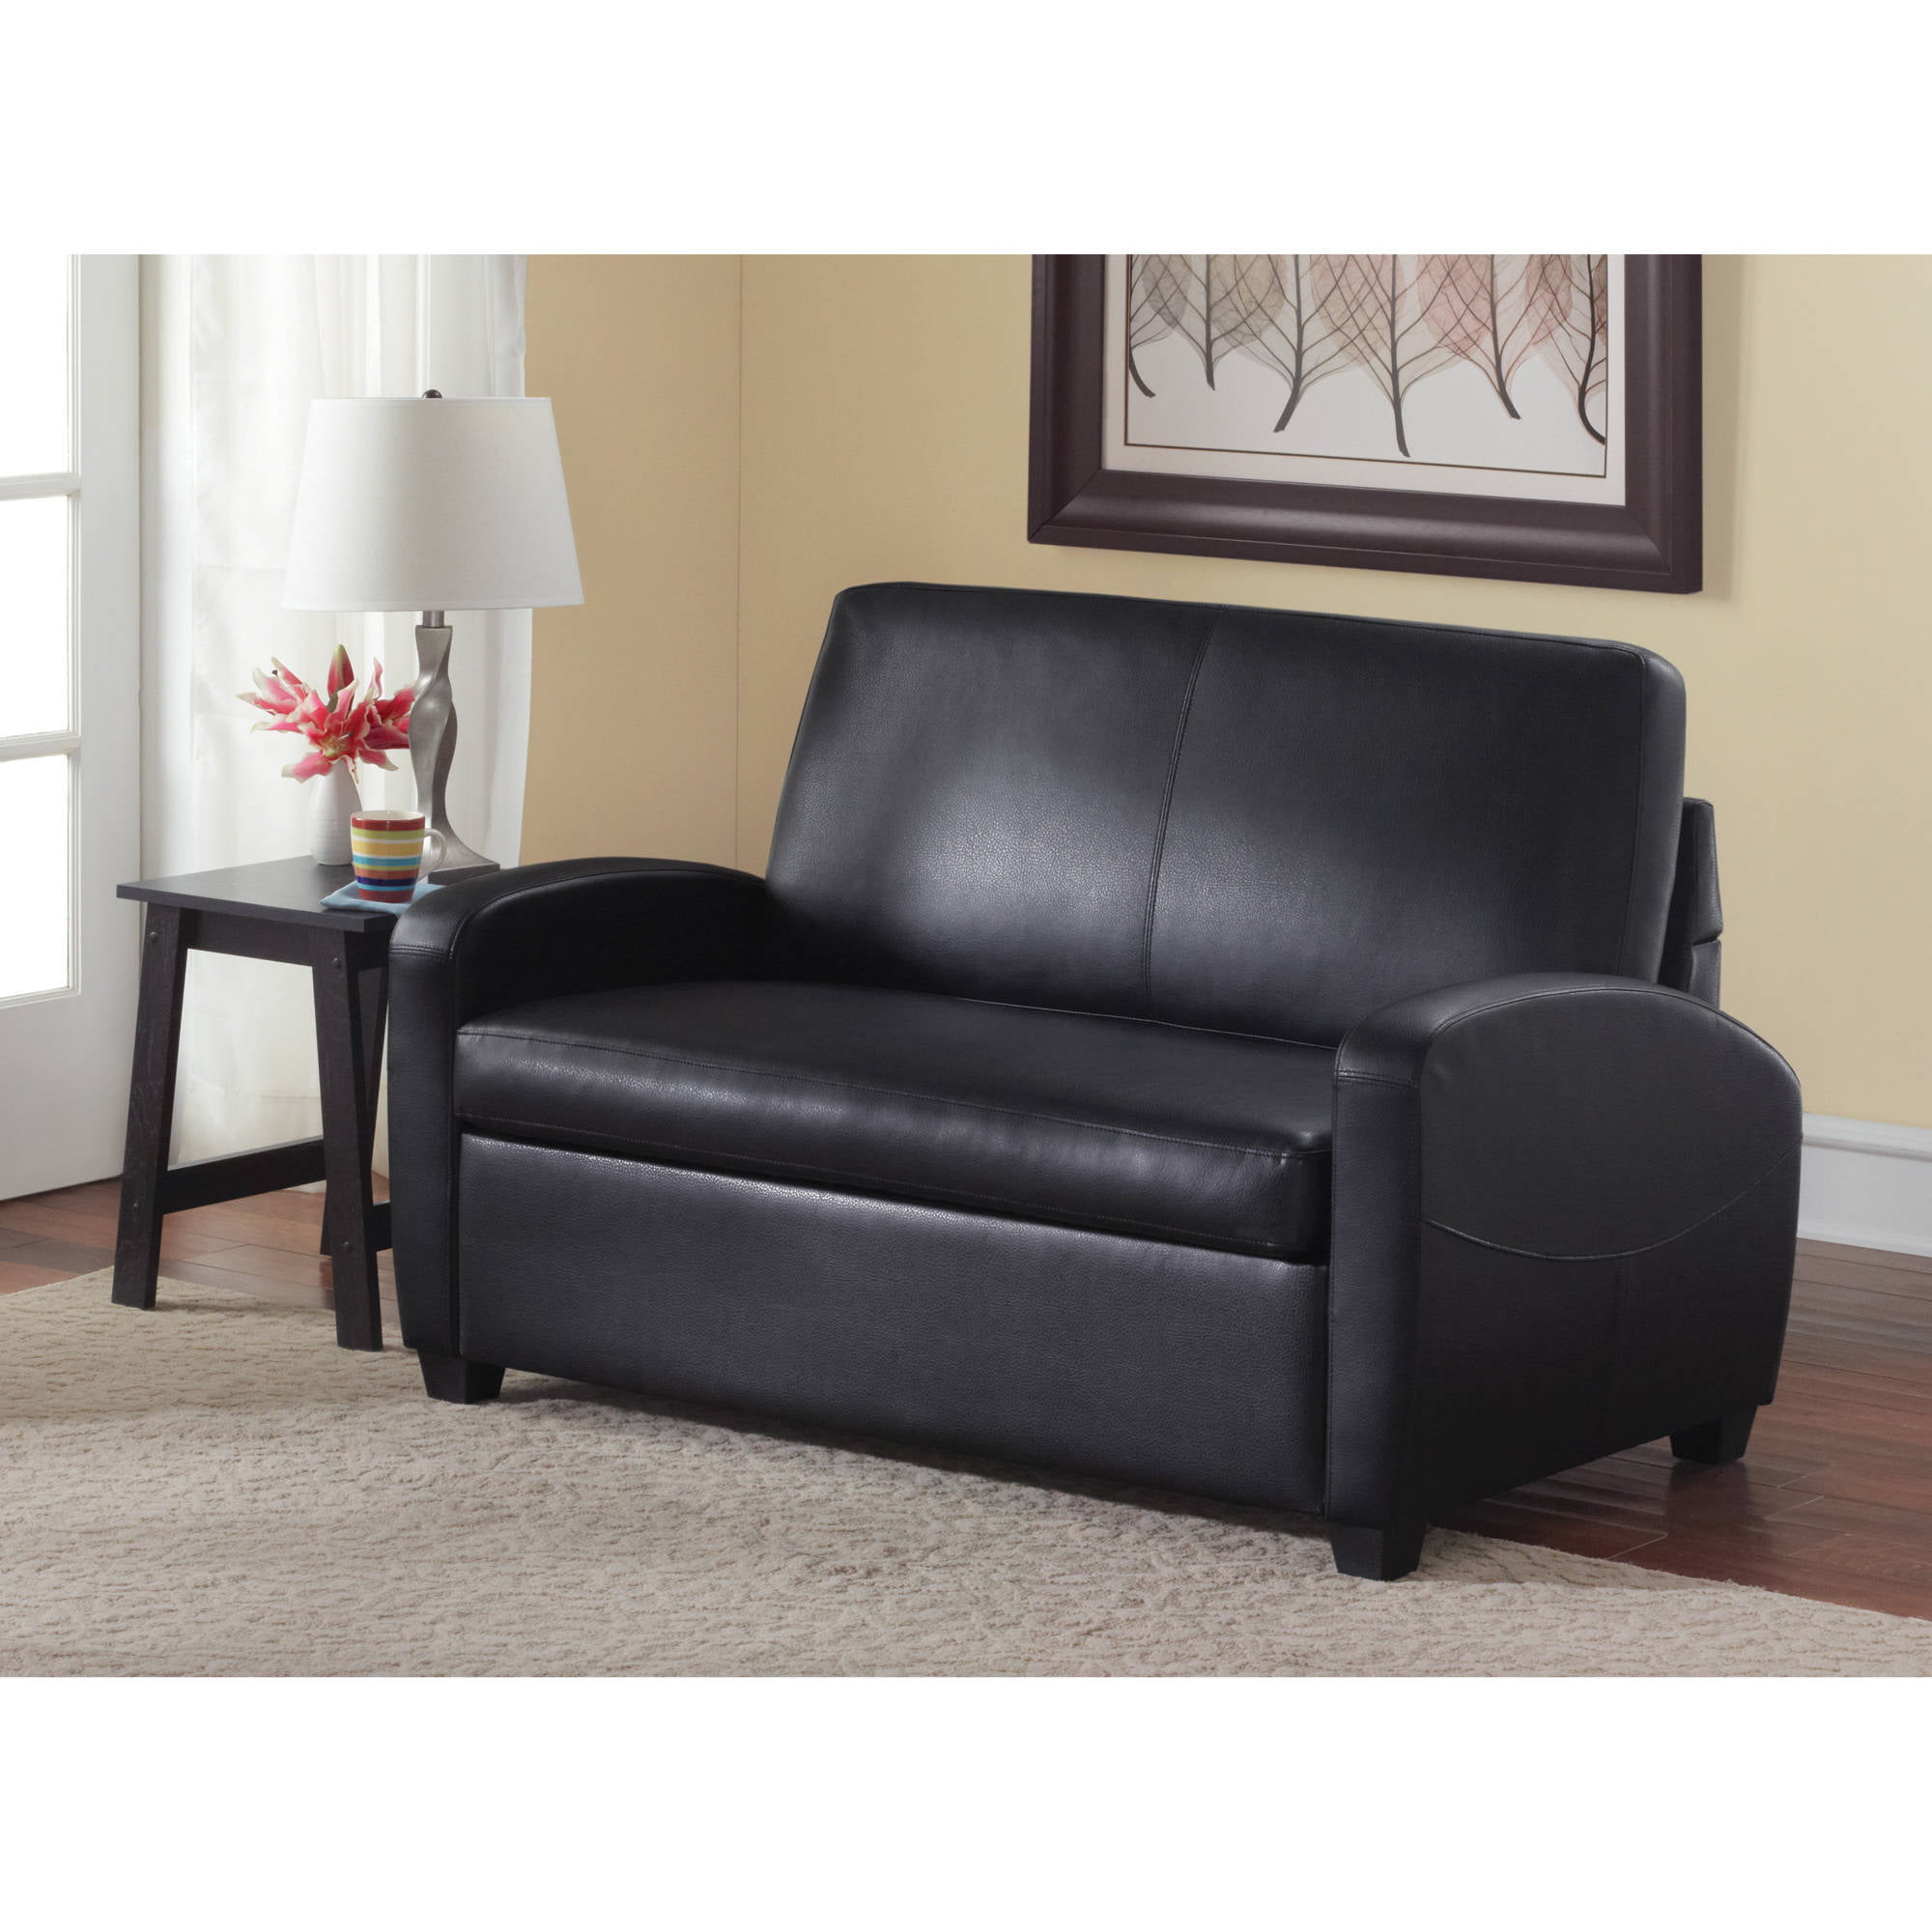 mainstays 54 loveseat sleeper black walmart com rh walmart com leather sleeper sofa twin leather sleeper sofas full